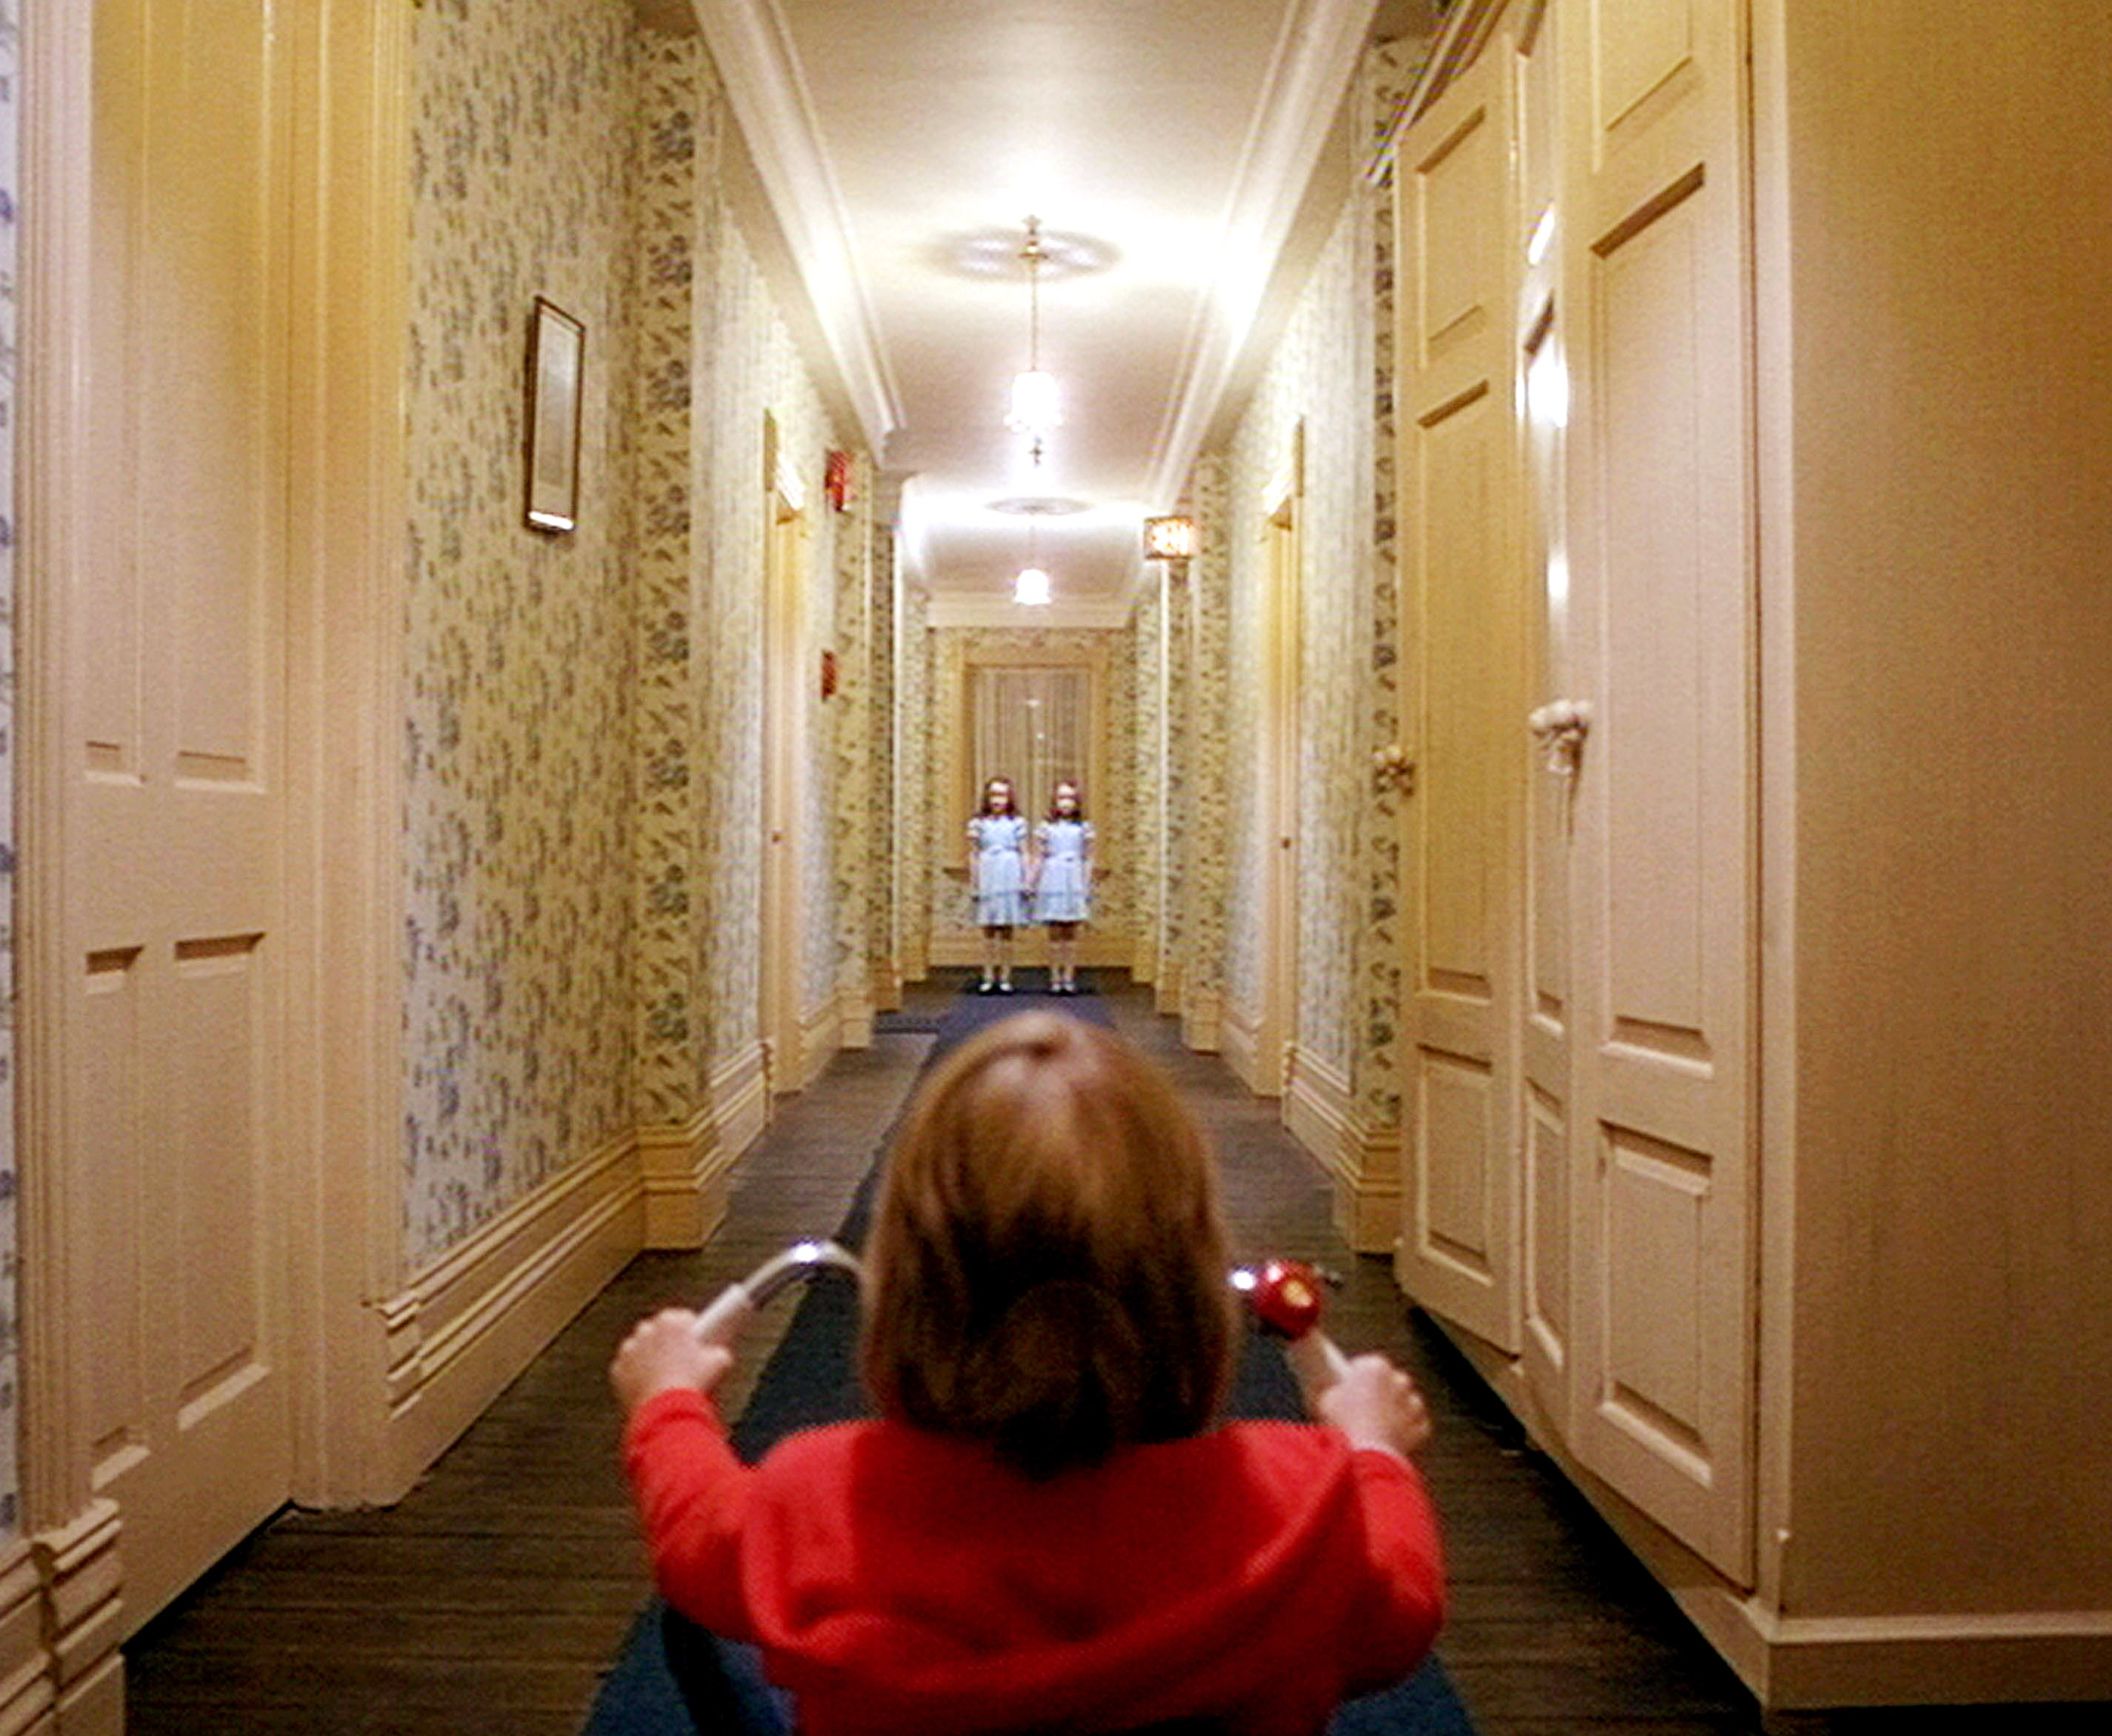 Shining' Hotel to Become World's First Horror-Themed Museum - Rolling Stone